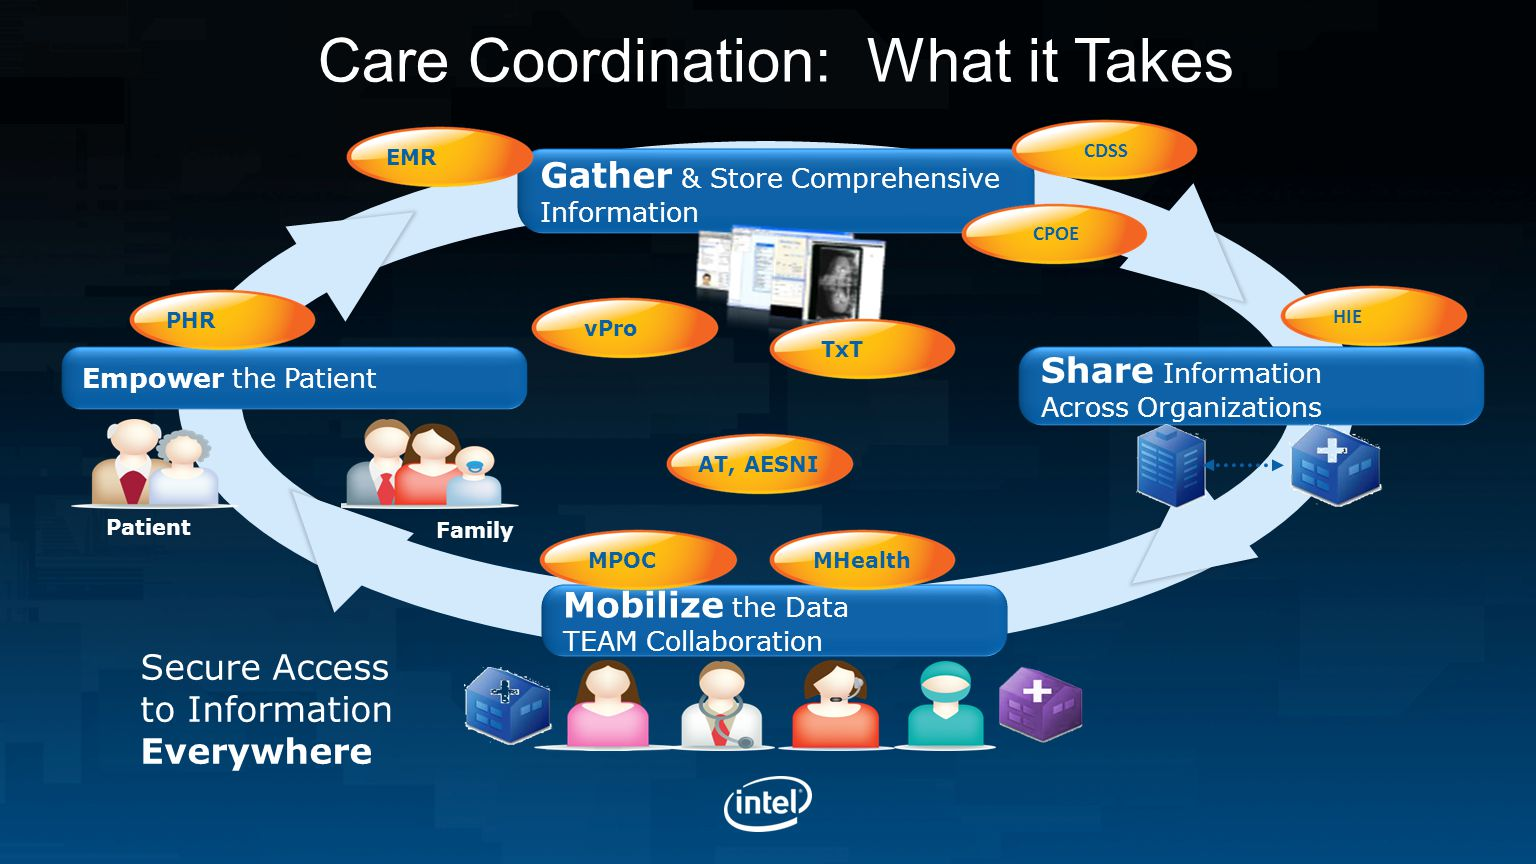 Care Coordination: What it Takes